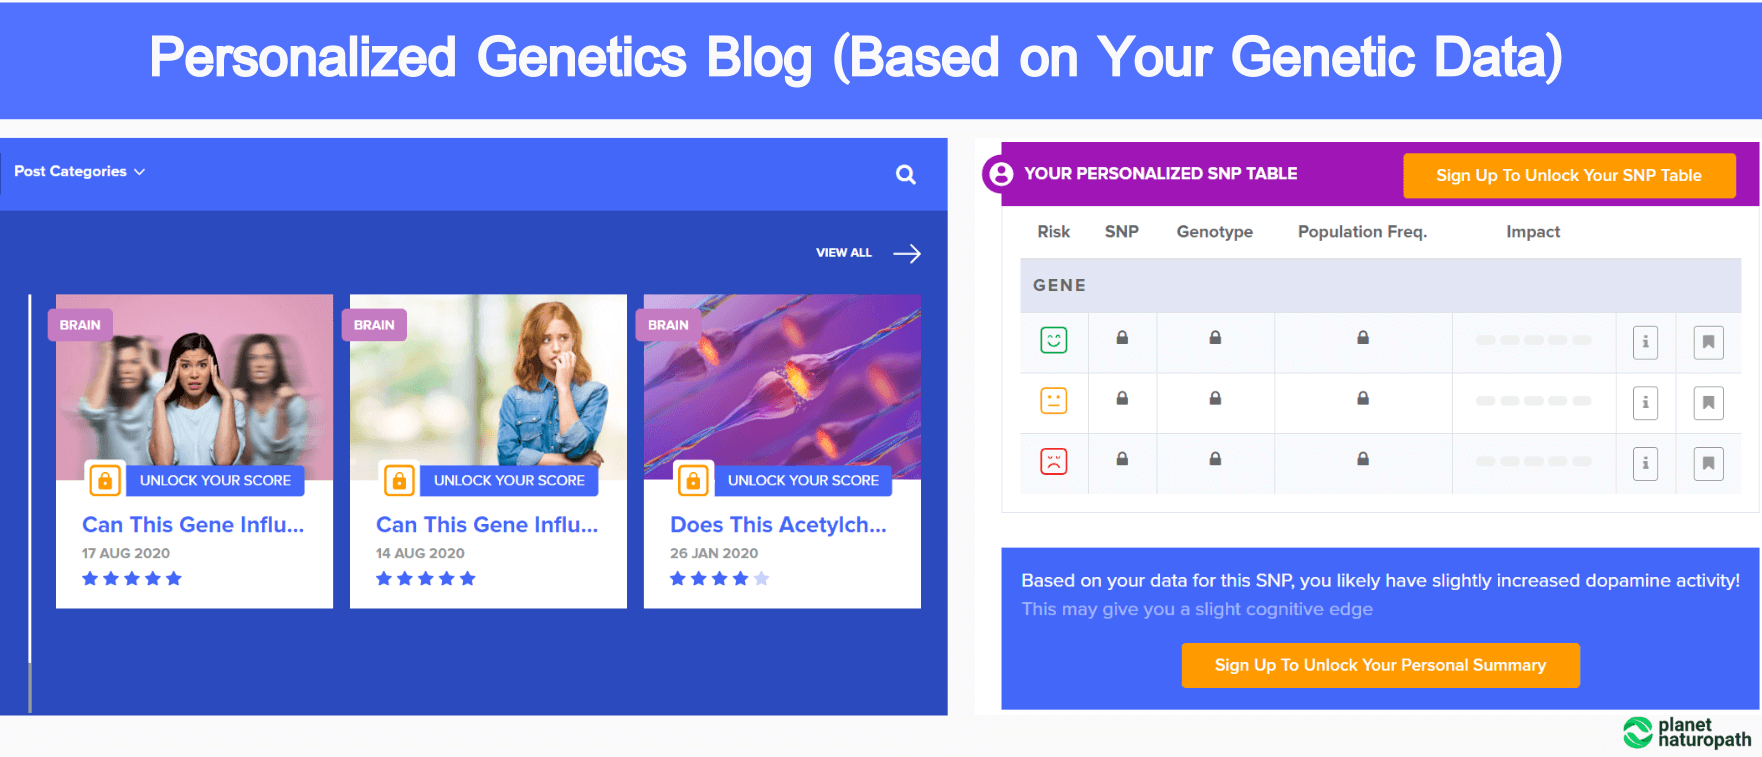 Personalized-Genetics-Blog-Based-on-Your-Genetic-Data